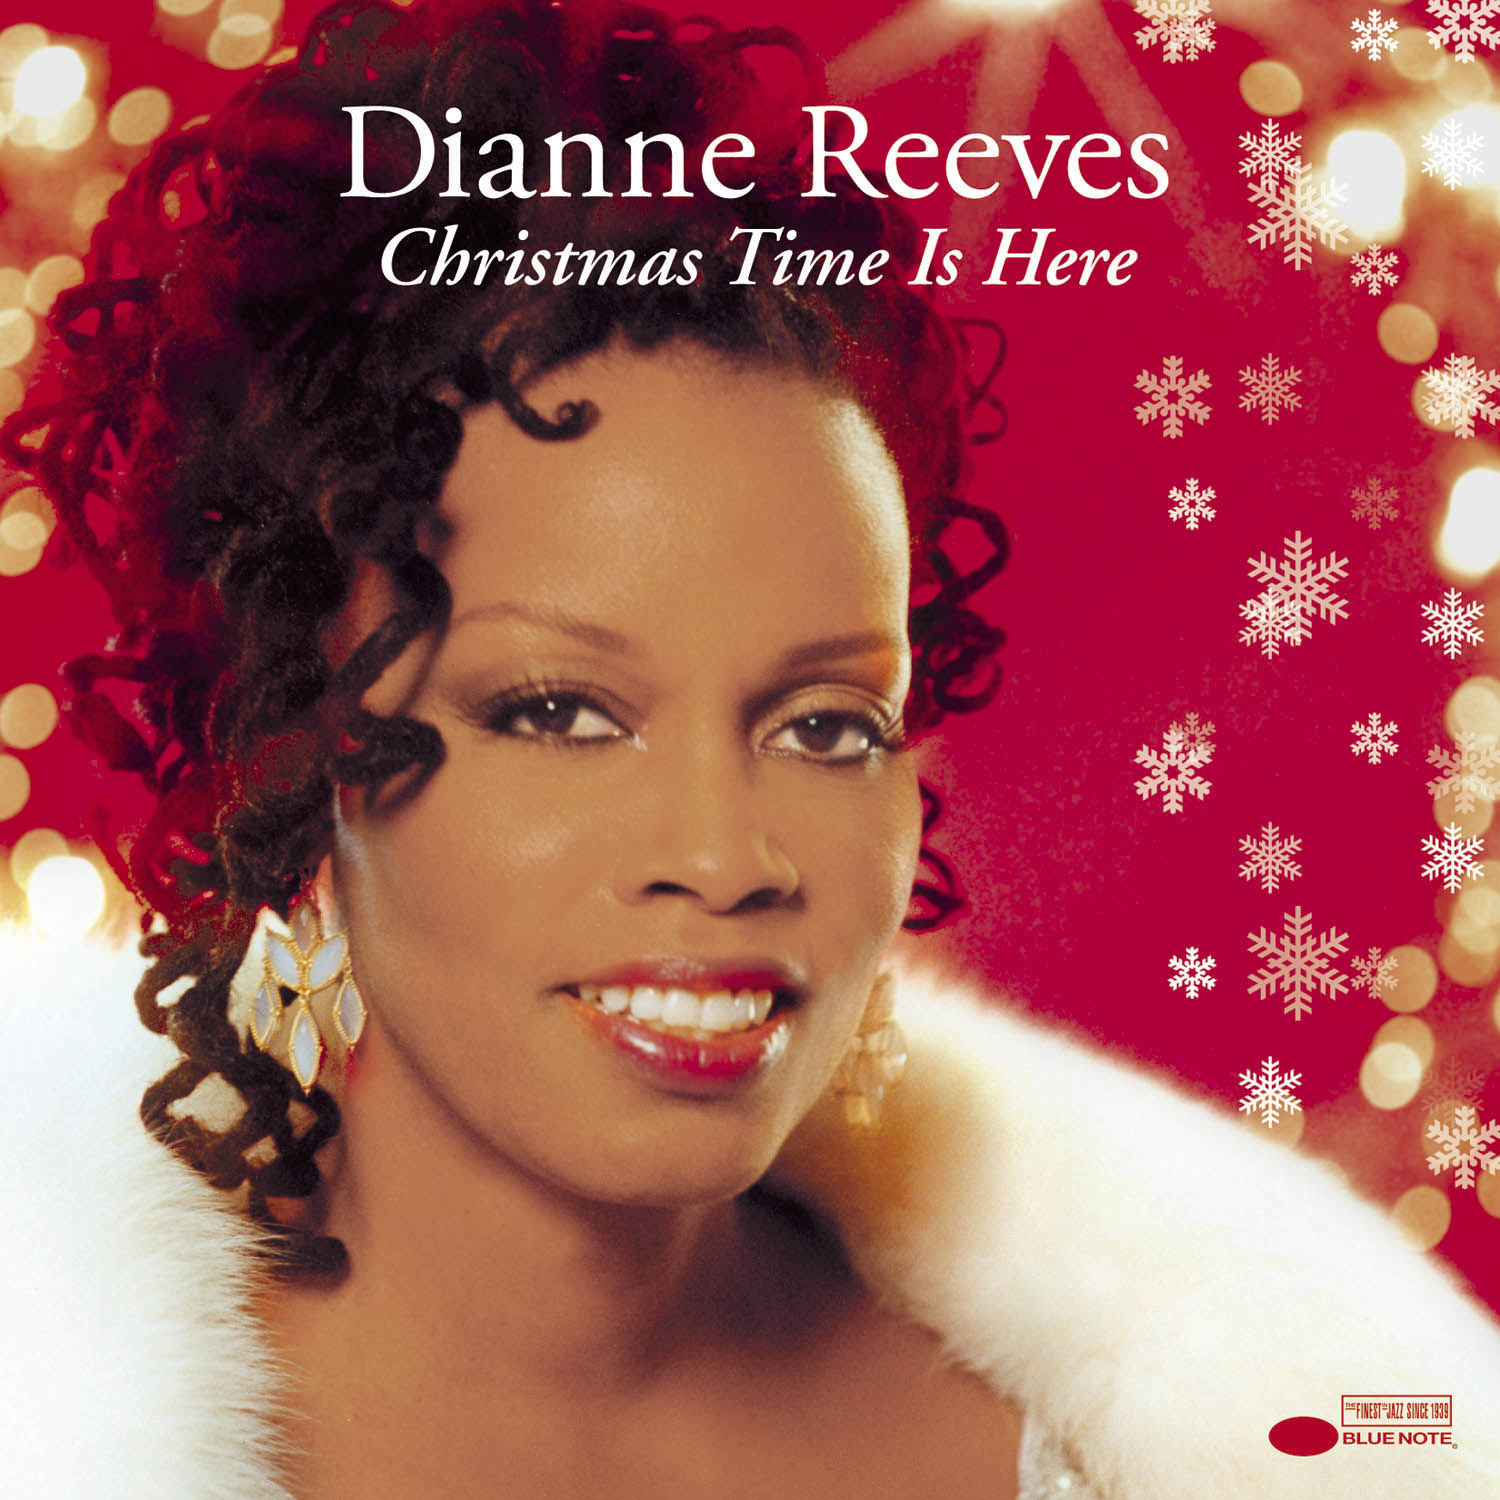 DIANNE REEVES: XMAS TIME IS HERE